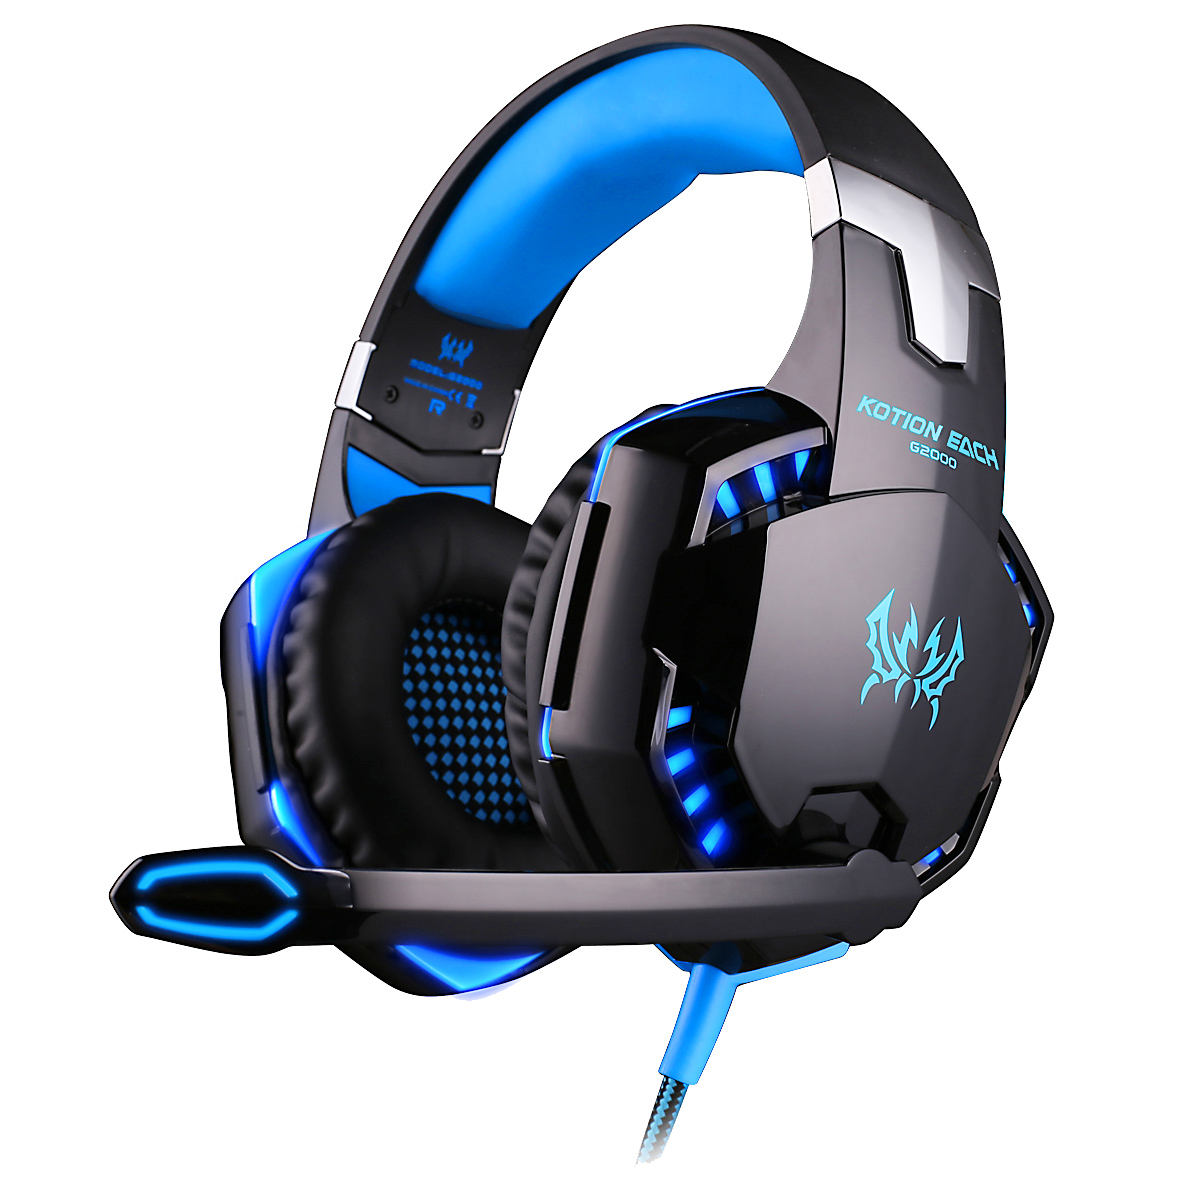 Factory Direct kotion each G2000 Wired Gaming Headset 3.5mm Stereo Surround Sound PC Earphone Game